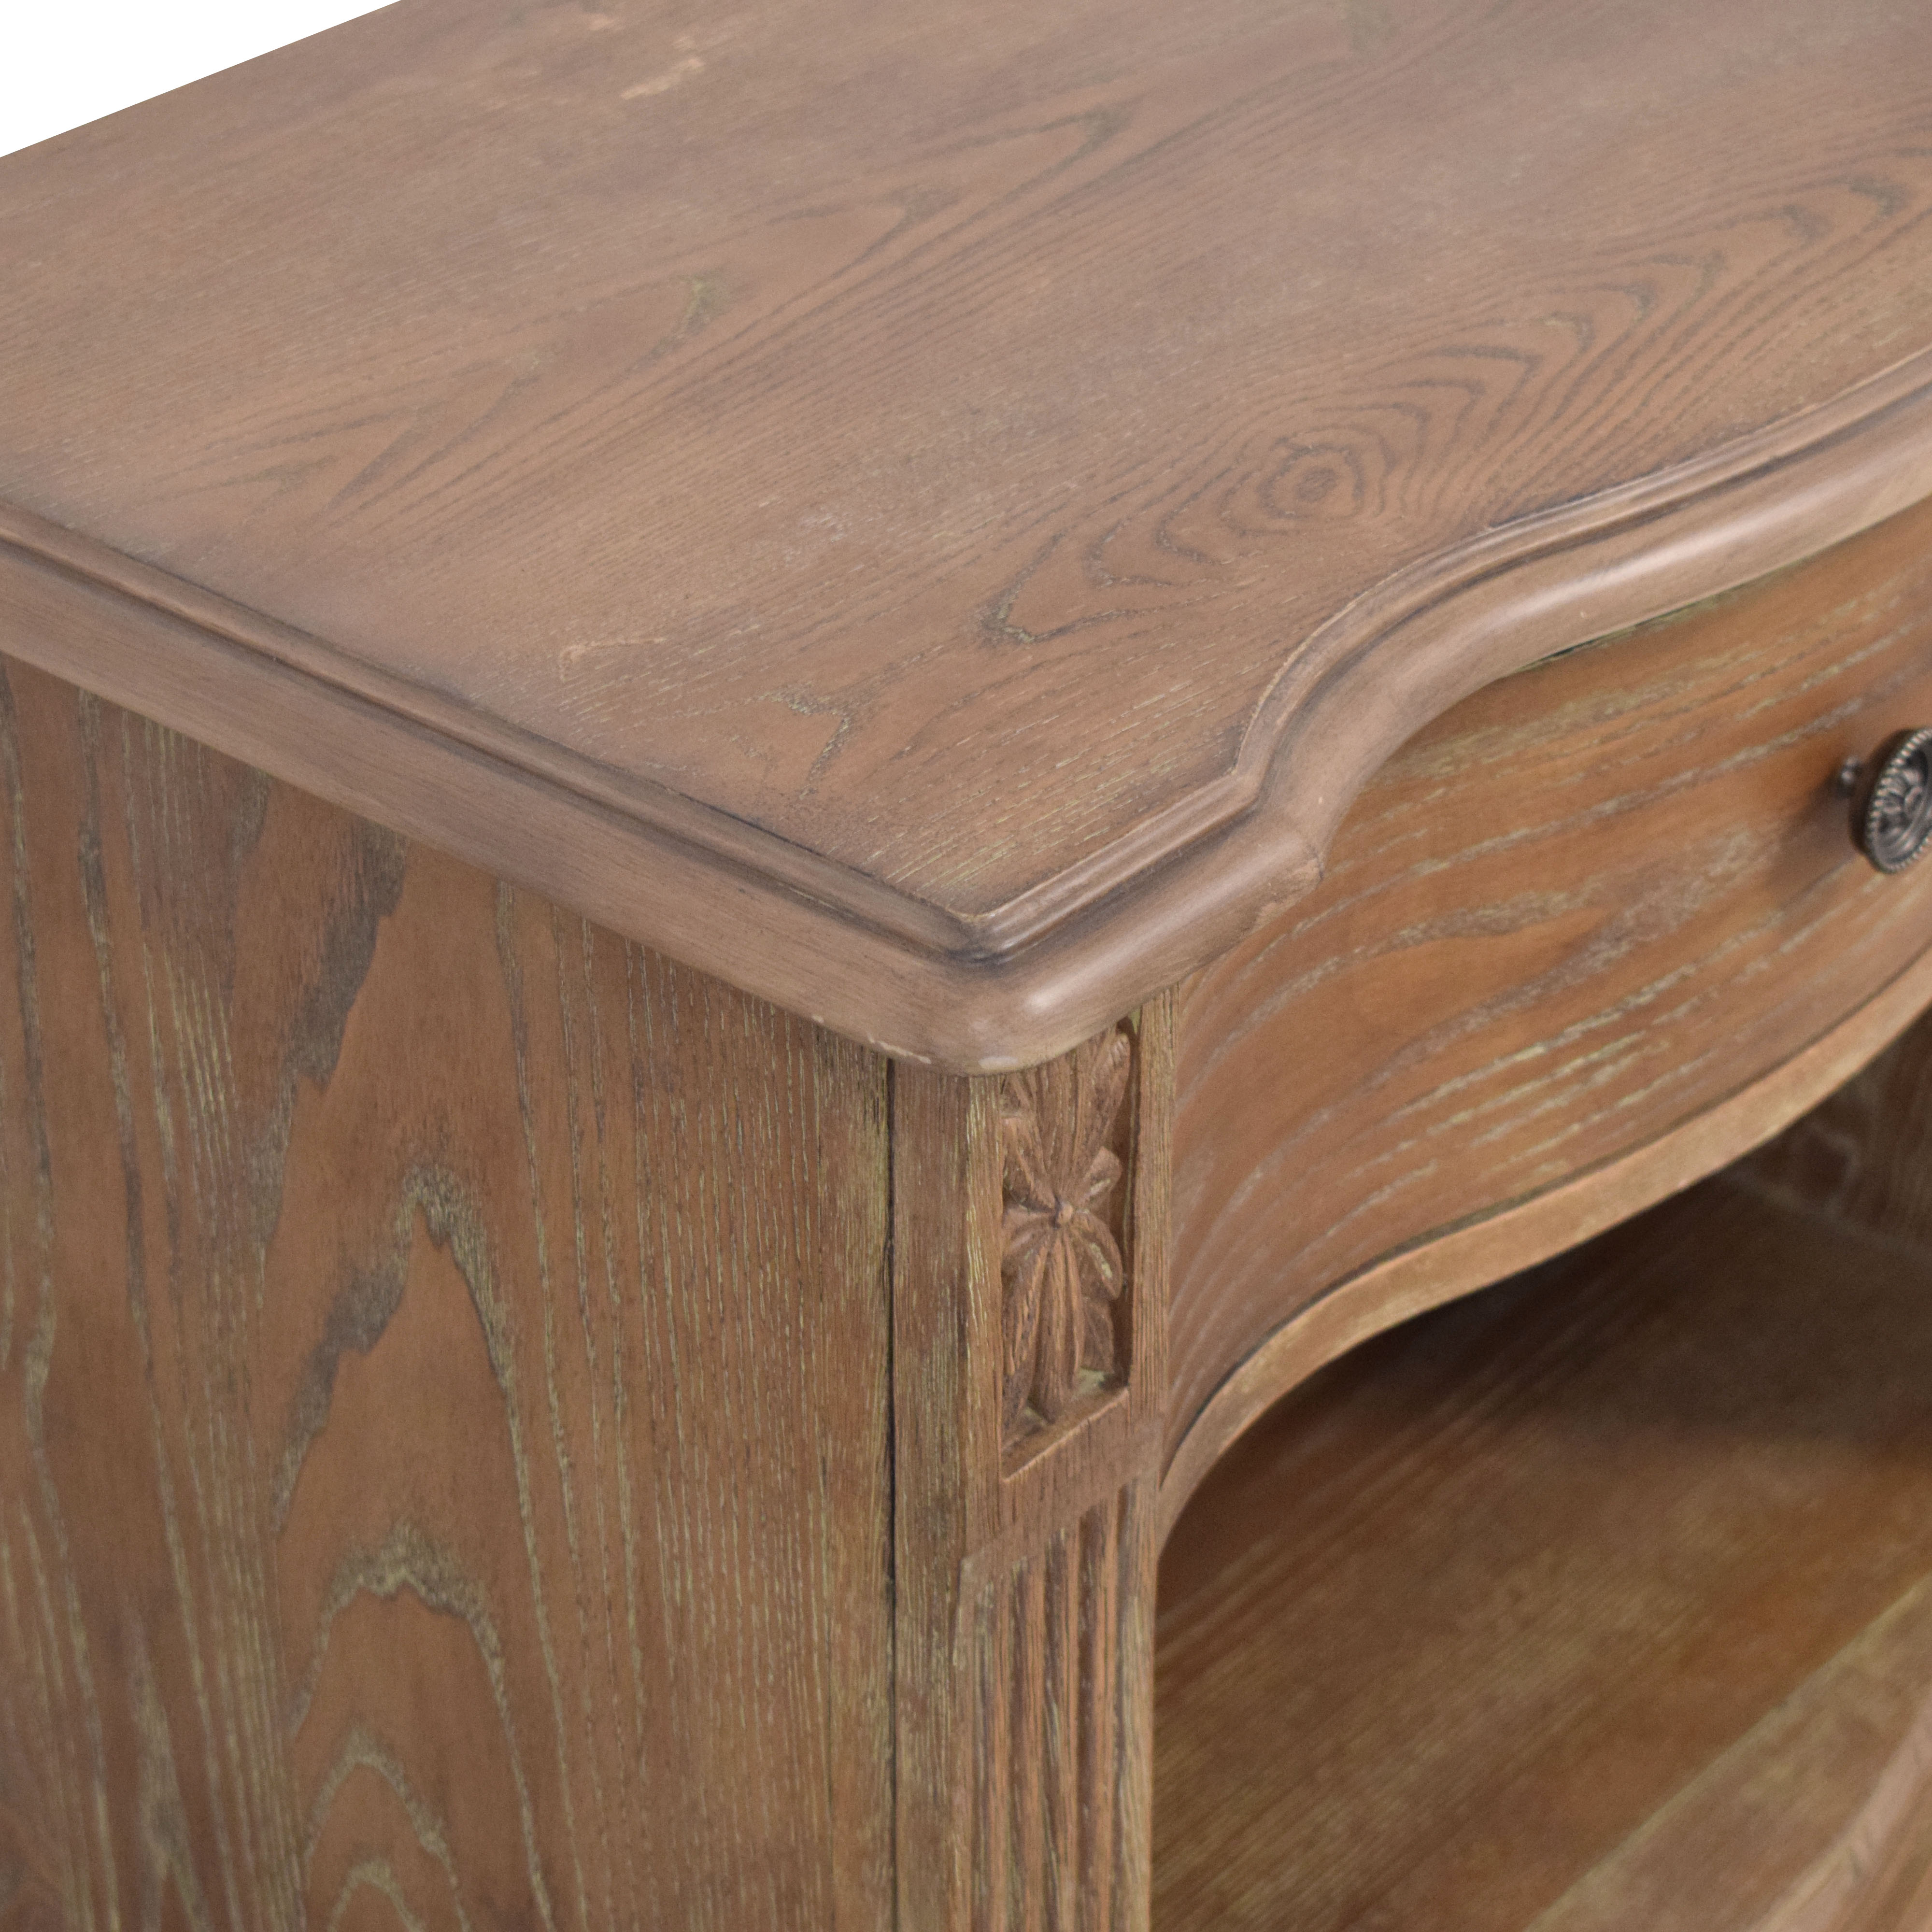 shop Raymour & Flanigan Raymour & Flanigan Rustic Single Drawer End Table online